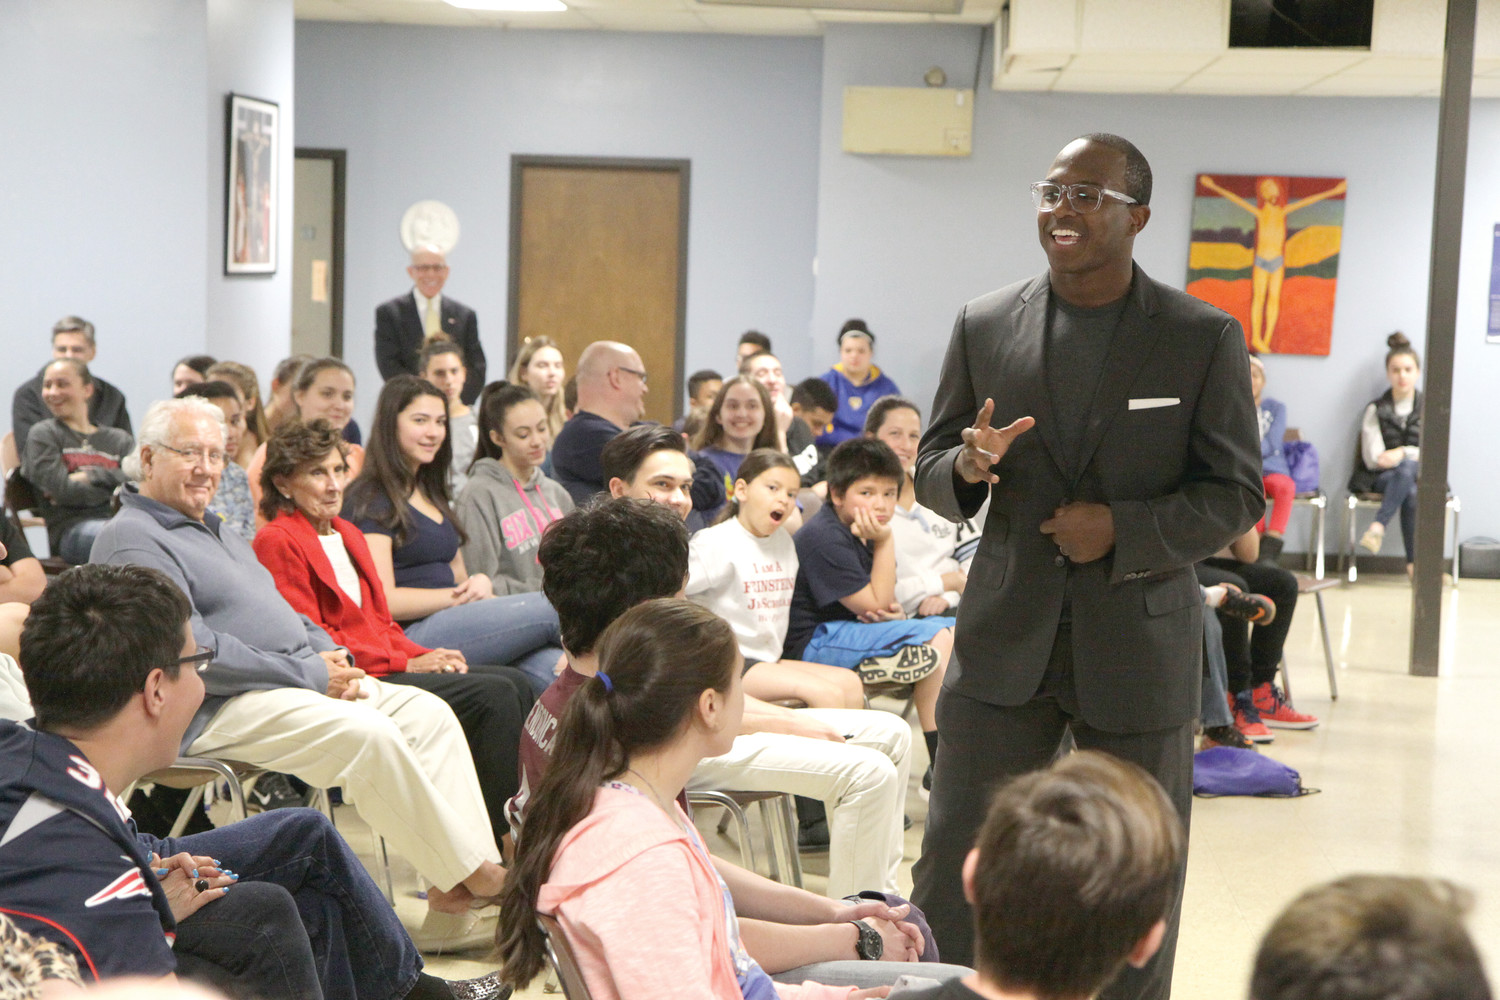 Matthew Slater, #18 on the New England Patriots where he plays special teams, spoke about the strong role that faith continues to play in his life during a visit to Mary, Mother of Mankind Parish in an event for young people and their families celebrating the parish's 50th anniversary.